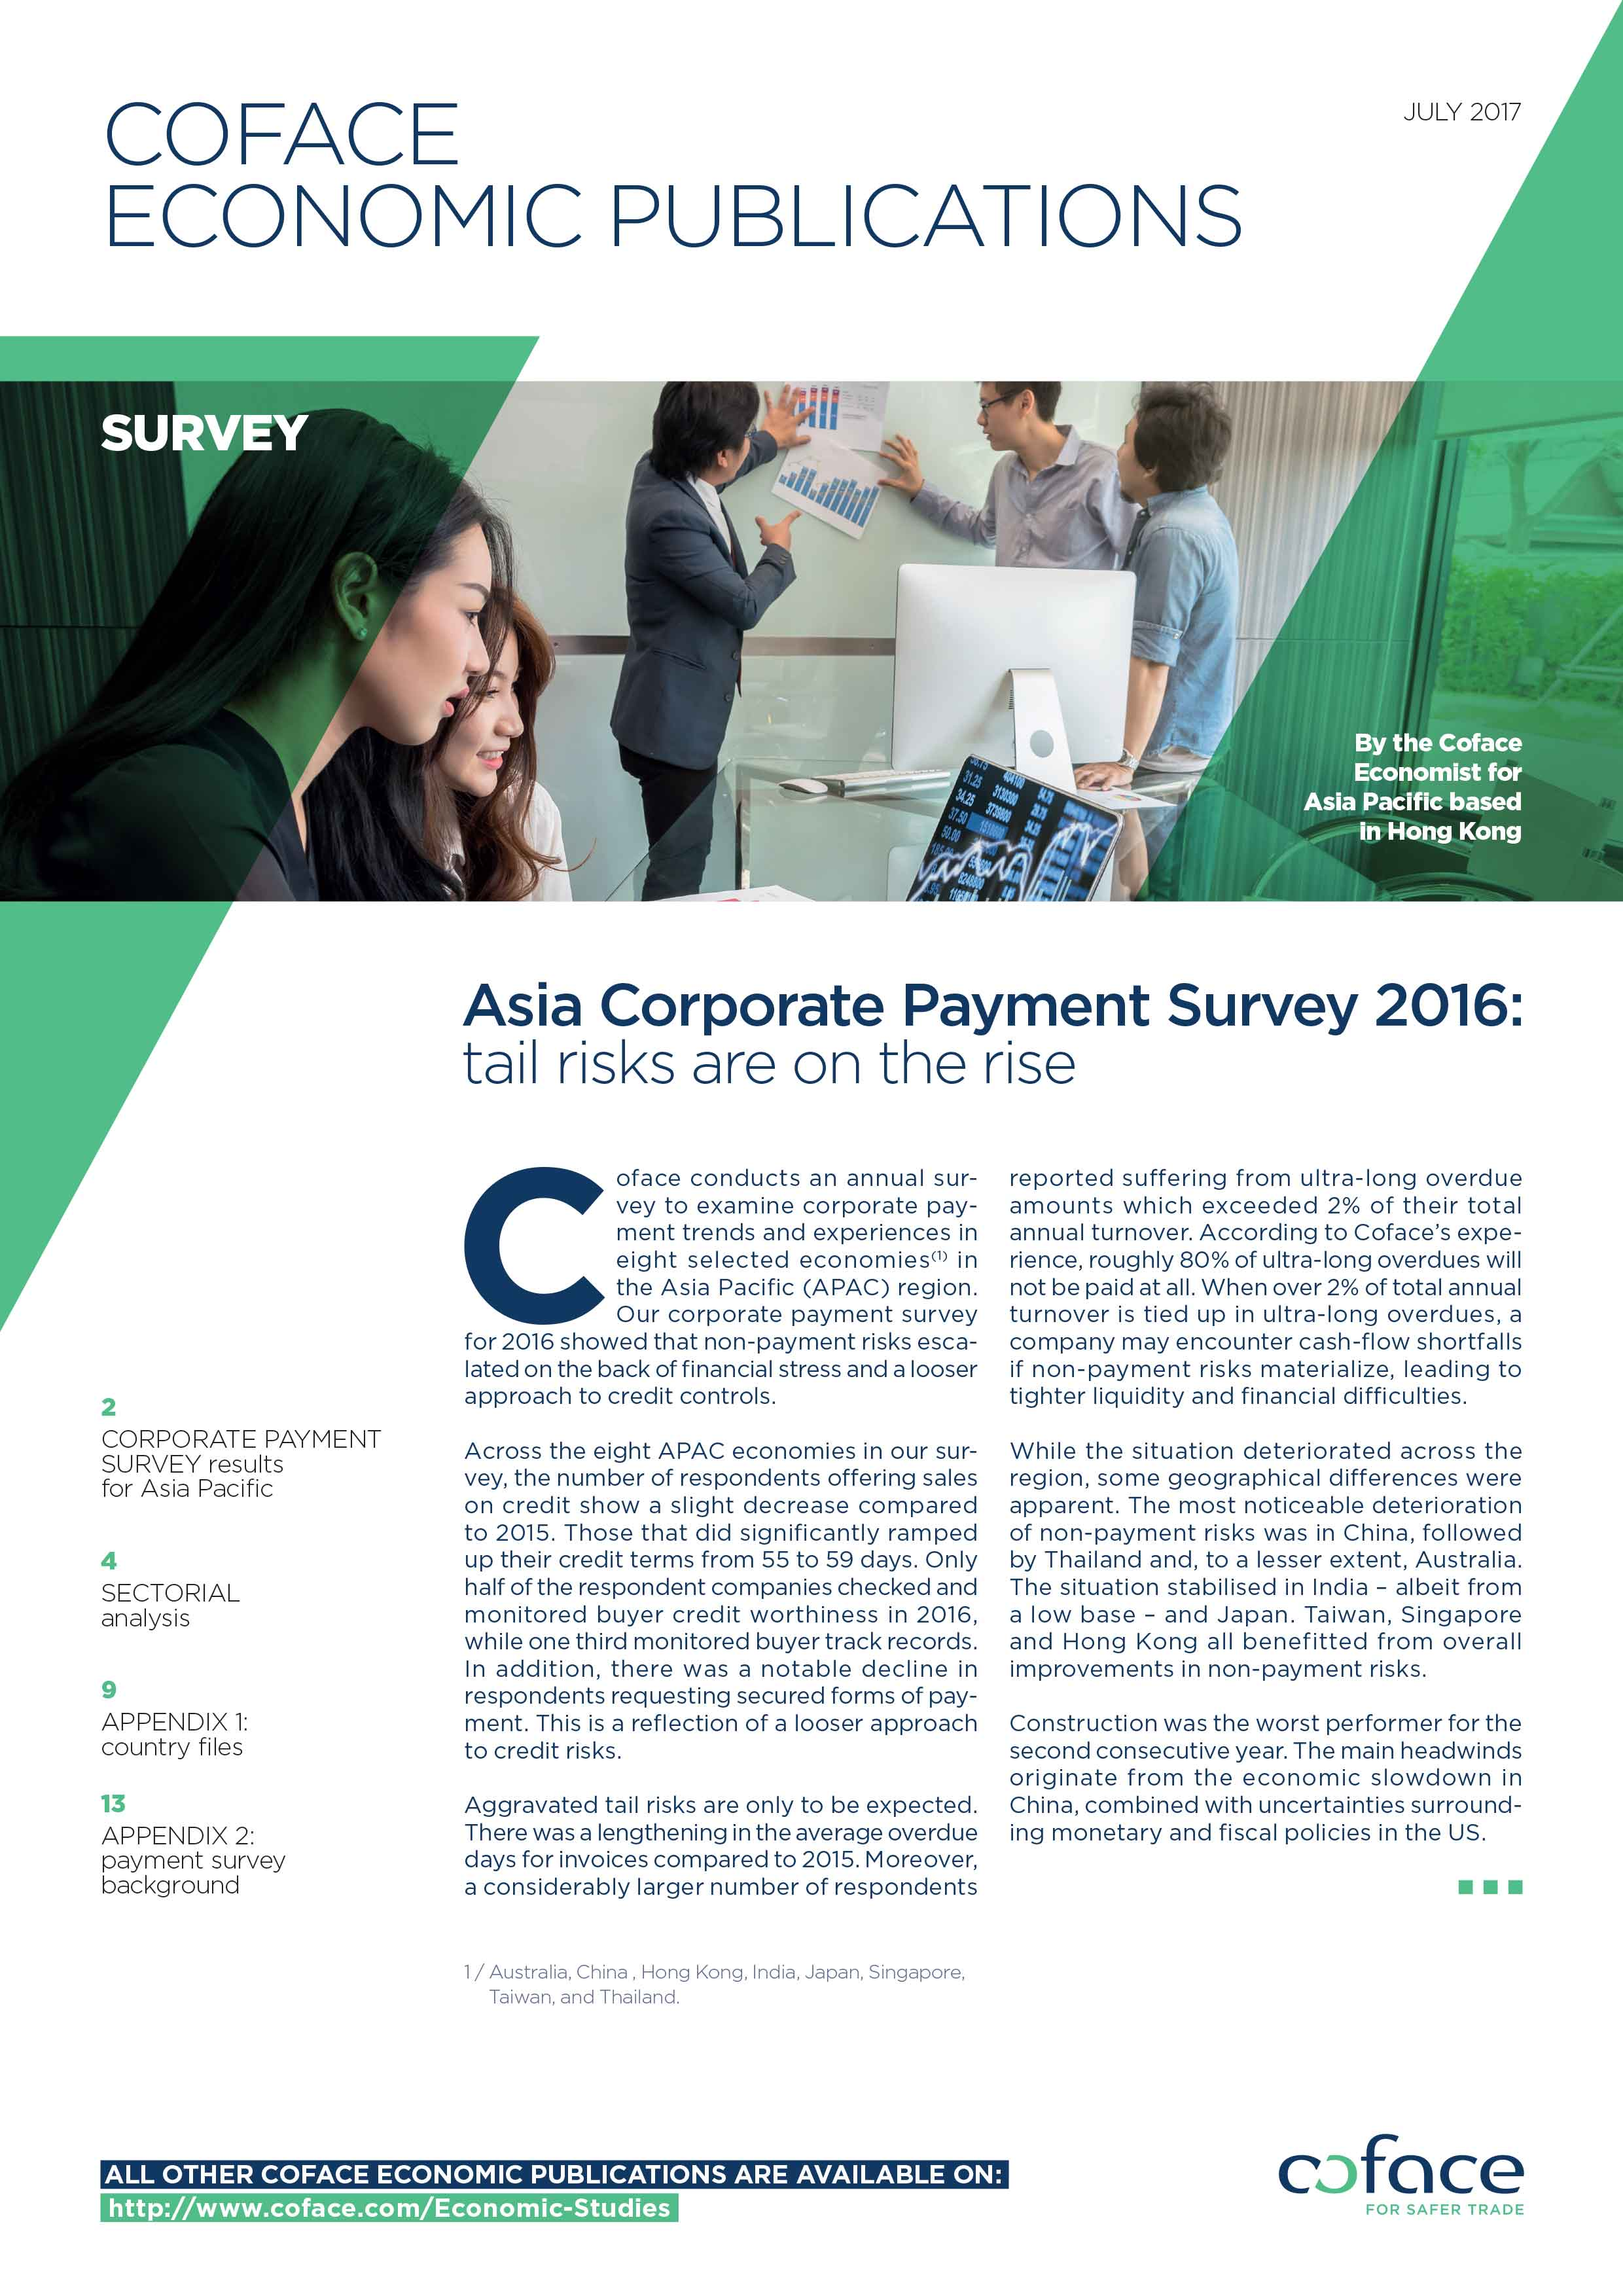 Asia Corporate Payment Survey 2016: tail risks are on the rise